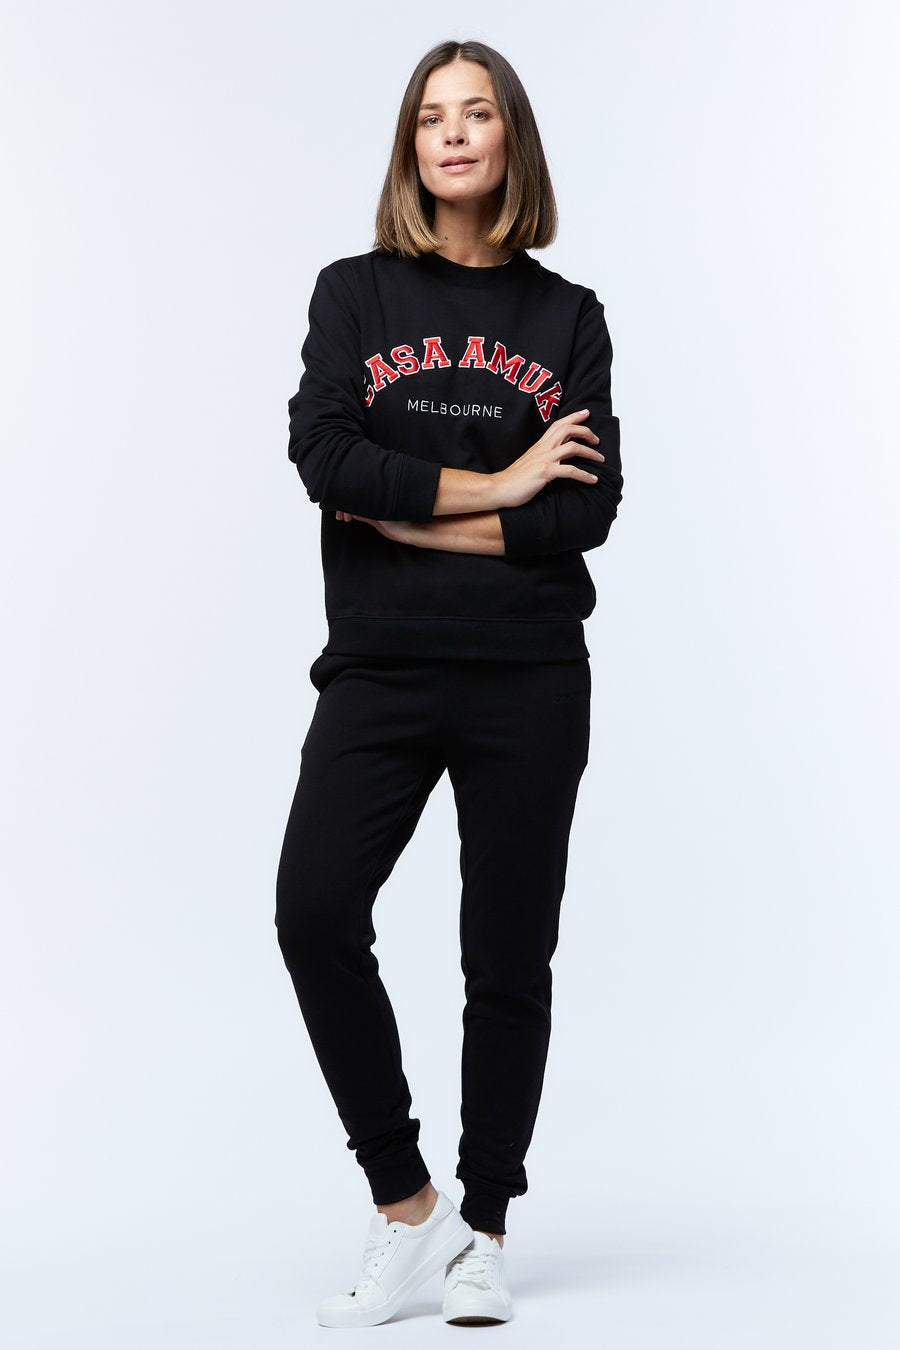 Casa Amuk - Varsity Sweater Black/Chilli